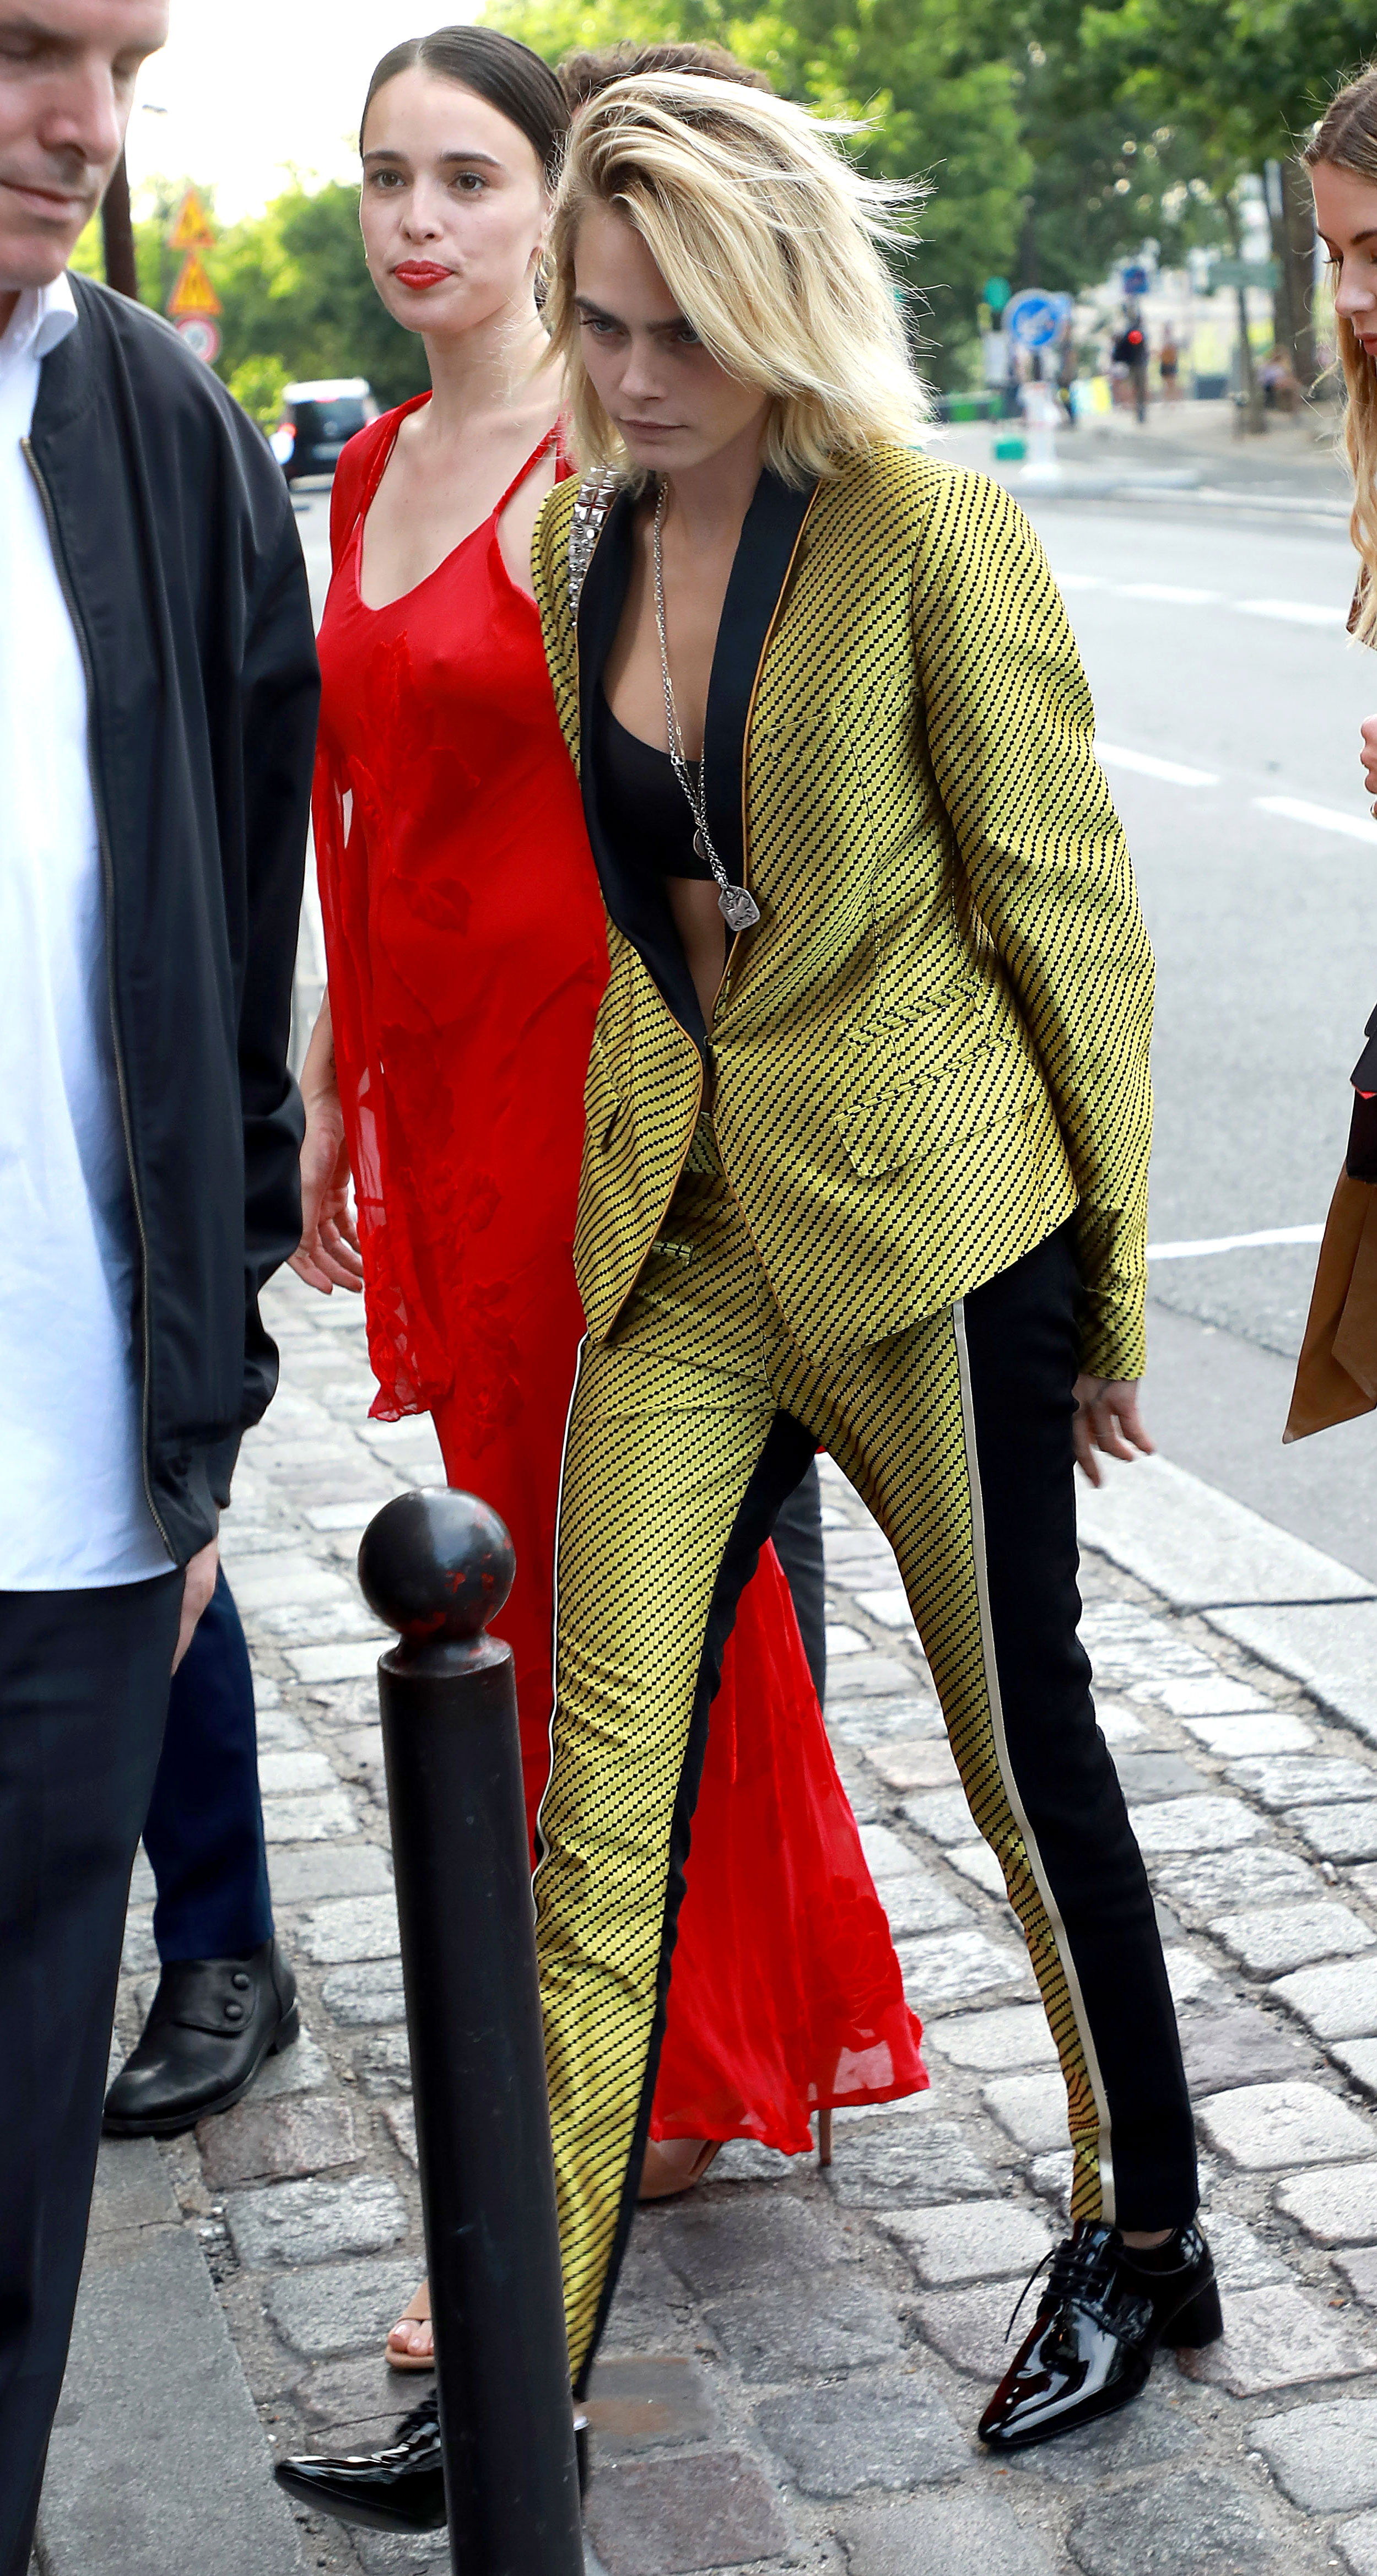 Zoe Kravitz Karl Glusman attend pre-wedding party French restaurant Lapérous Paris - Delevingne was ready to stop traffic in a bold yellow and black diagonal print suit with black stripes.